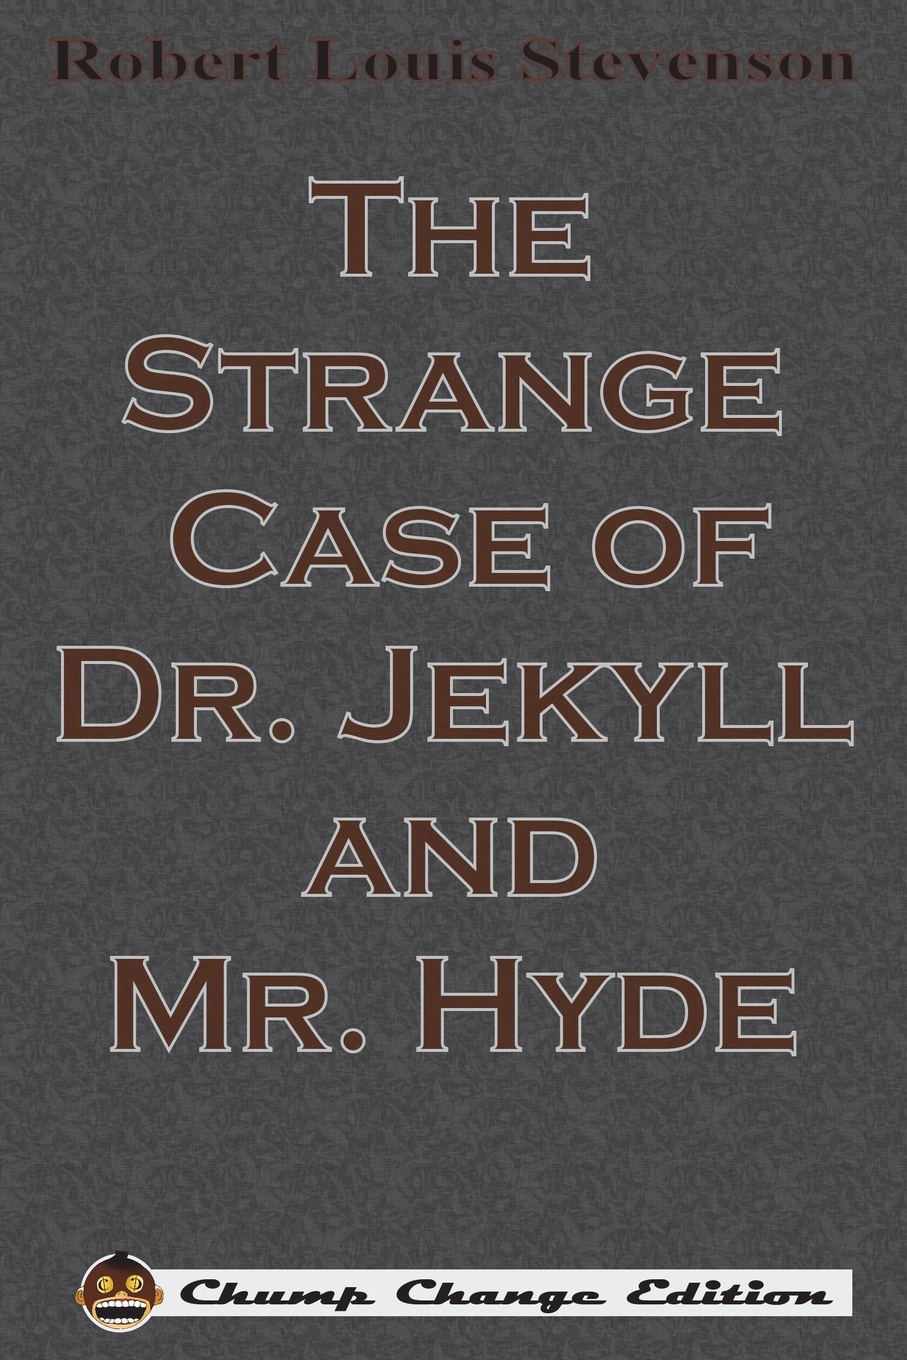 Stevenson Robert Louis The Strange Case of Dr. Jekyll and Mr. Hyde (Chump Change Edition) stevenson robert louis the strange case of dr jekyll and mr hyde